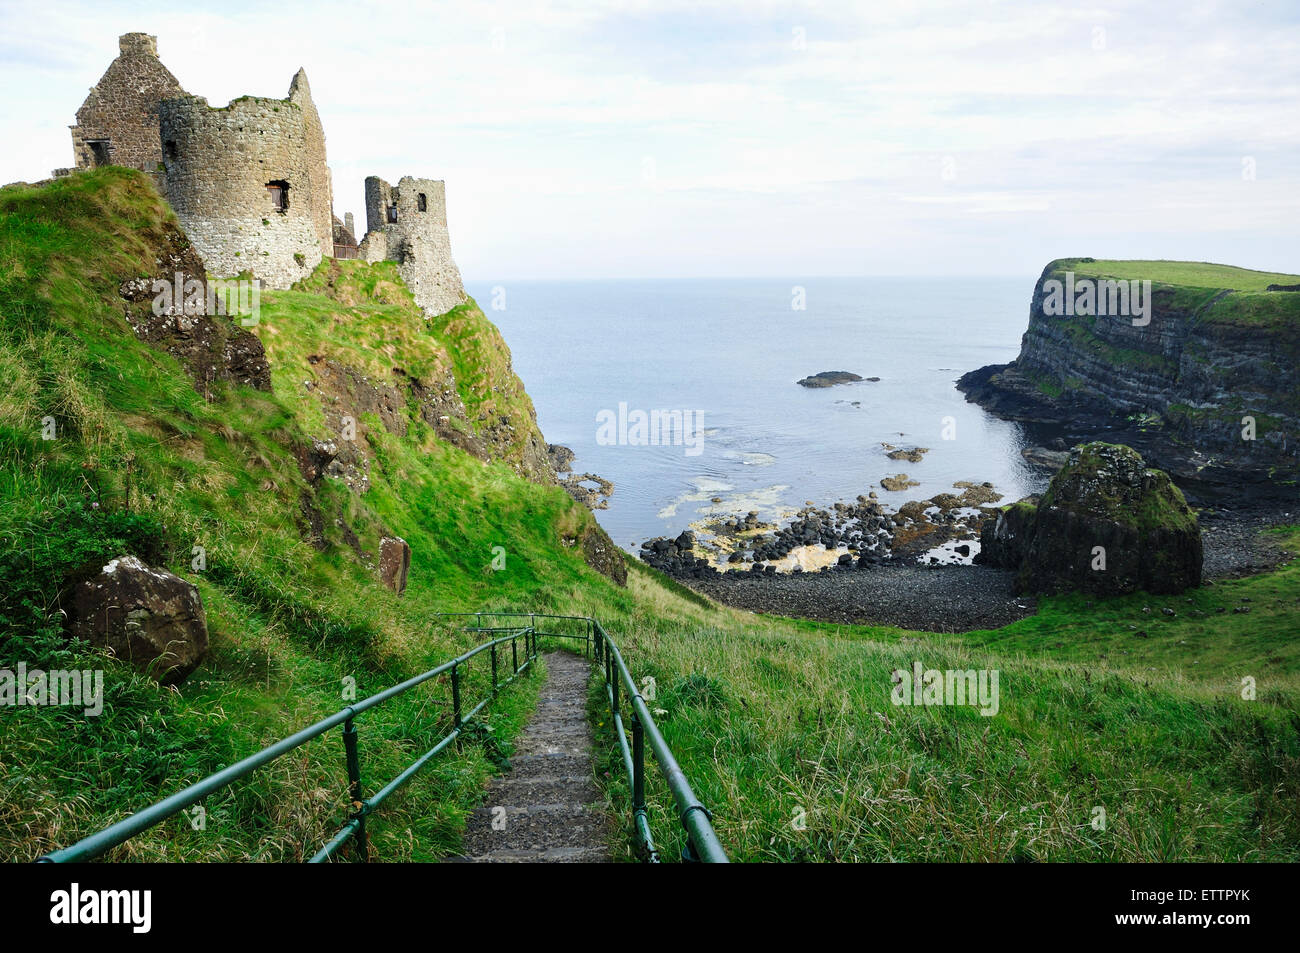 Dunluce Castle is a now-ruined medieval castle in Northern Ireland. County Antrim. United Kingdom, UK - Stock Image